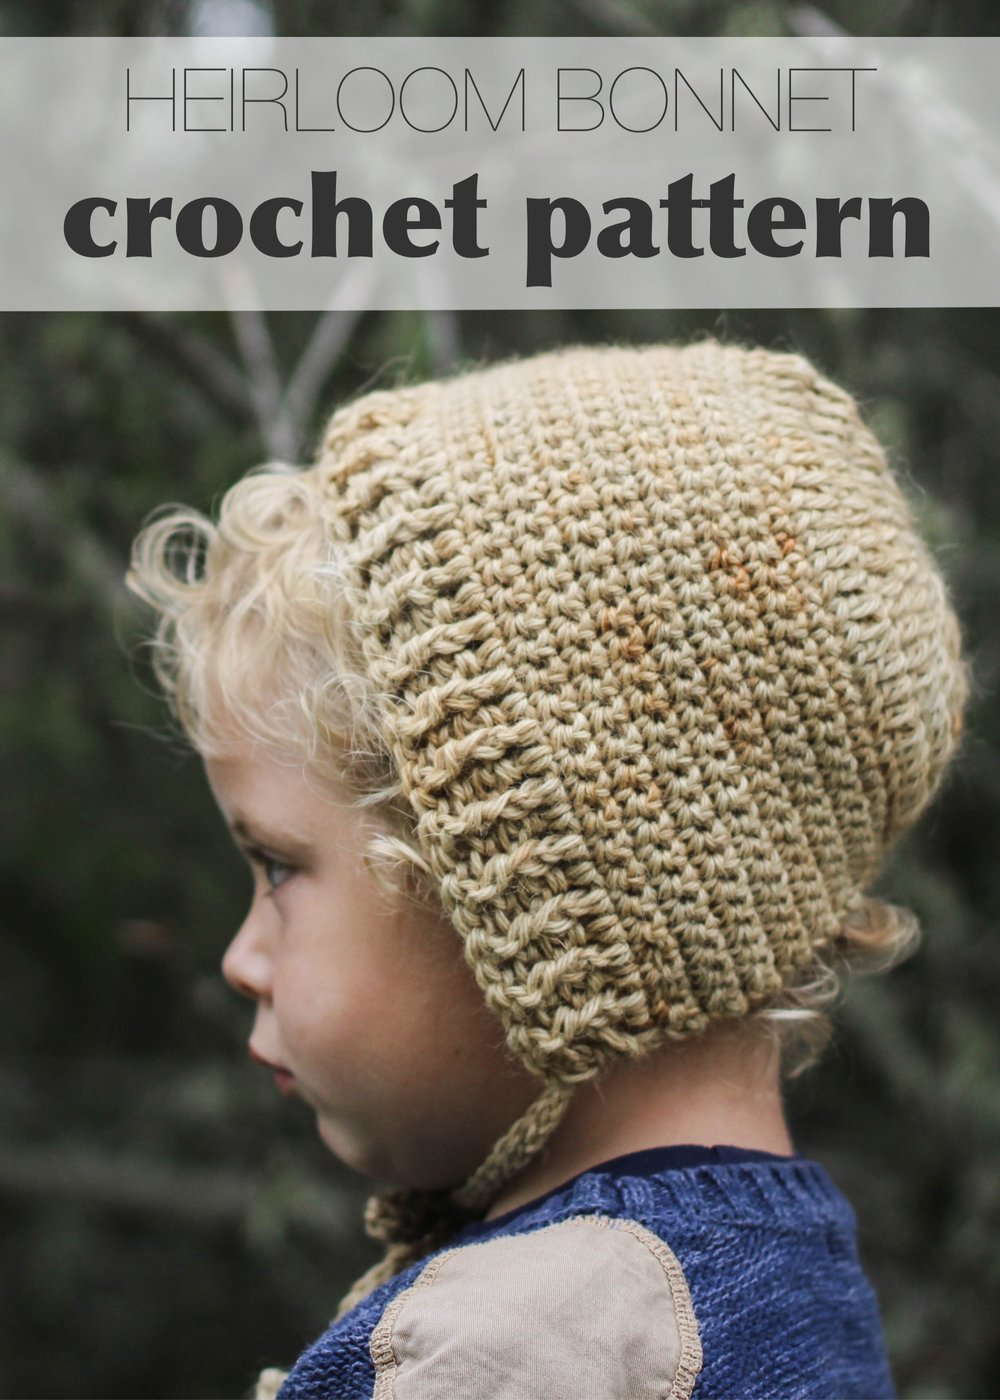 Heirloom Bonnet Crochet Pattern by Bluecorduroy.esty.com